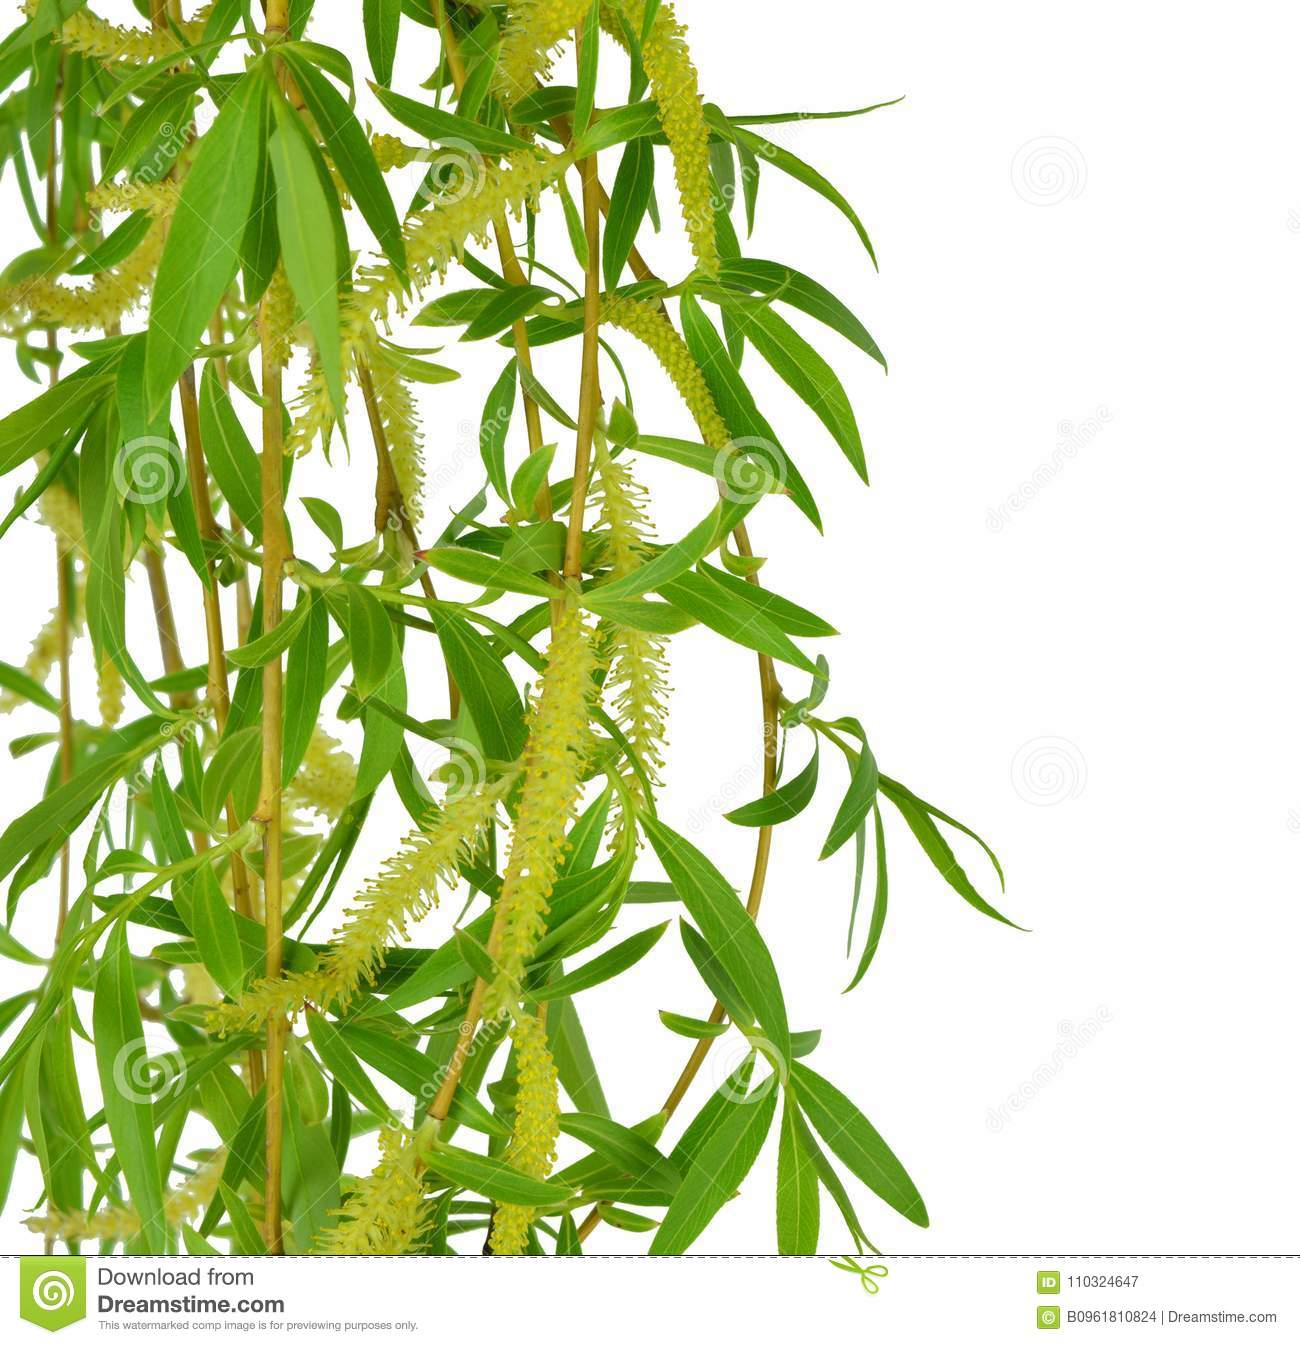 Flowering willow and spring foliage. Close-up. Isolated without